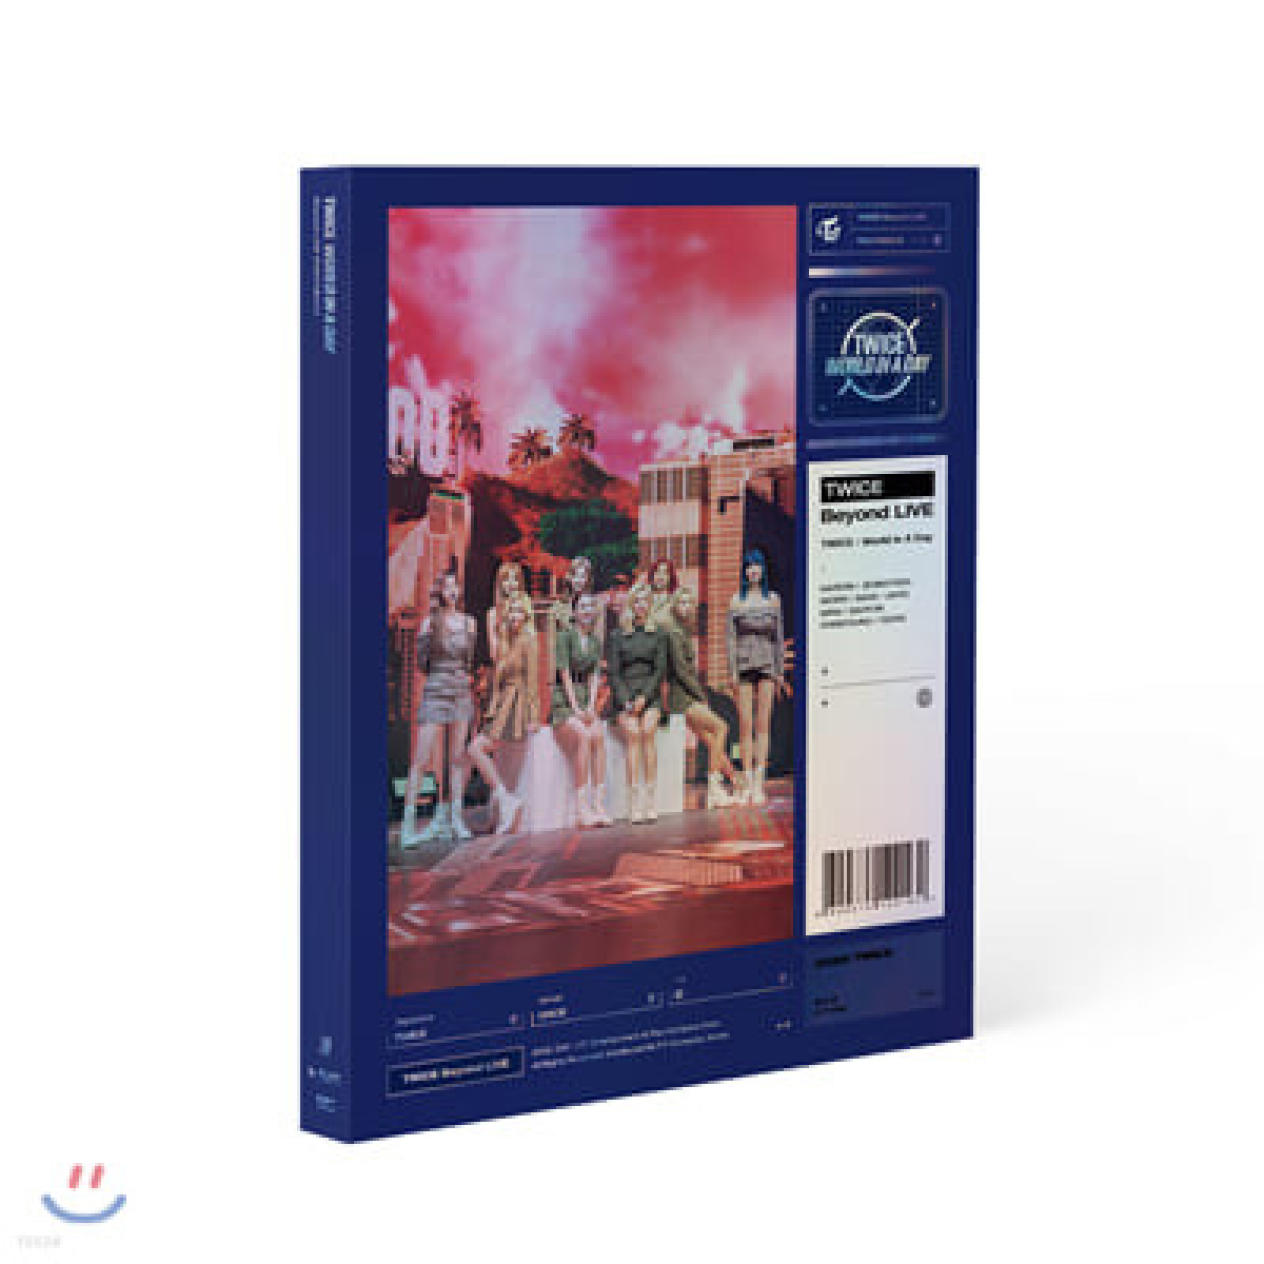 트와이스 (TWICE) - Beyond LIVE - TWICE : World in A Day PHOTOBOOK